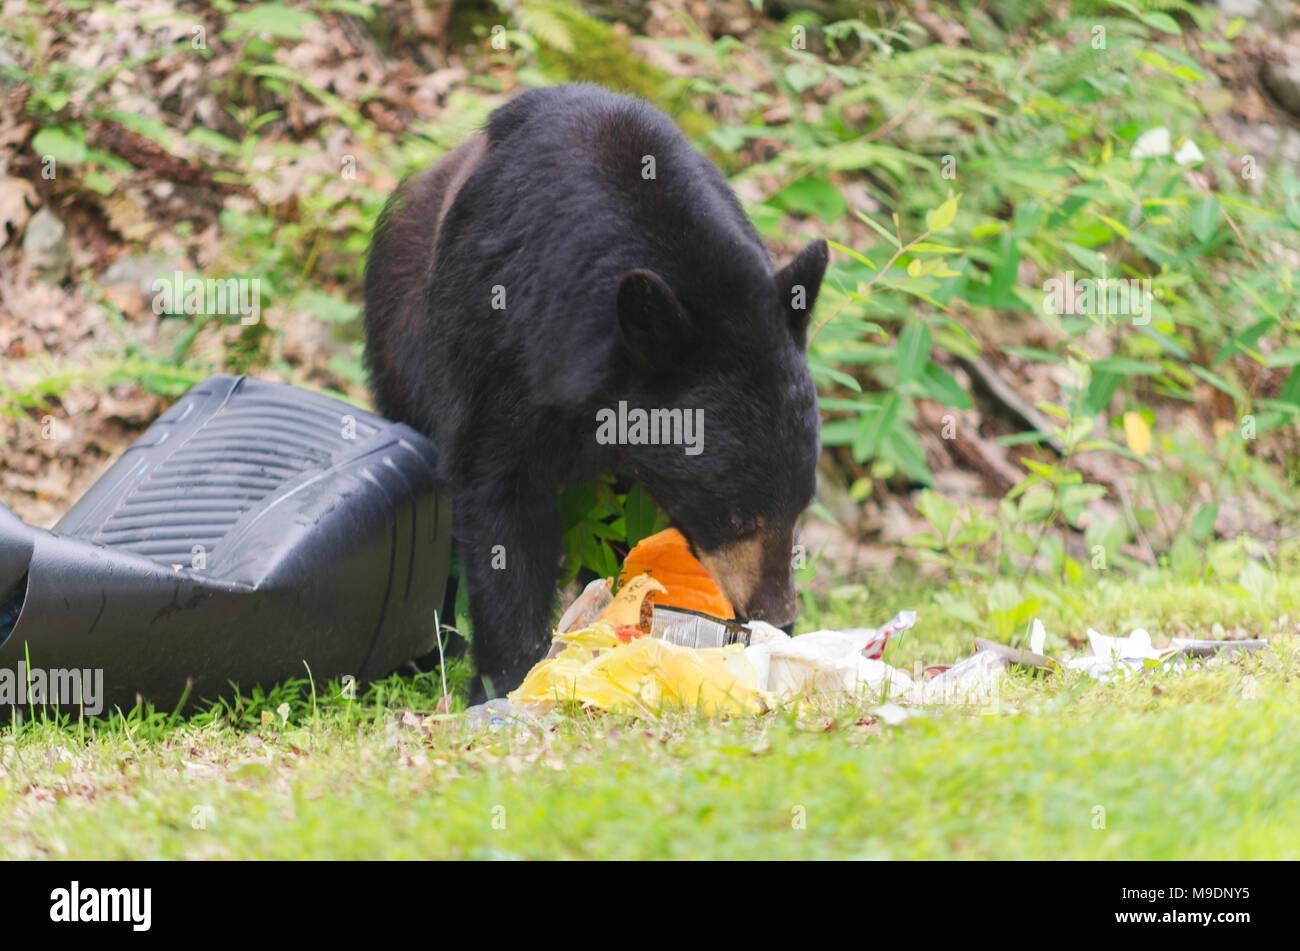 Black Bear eating Trash from trash can at edge of road in Upstate New York. - Stock Image